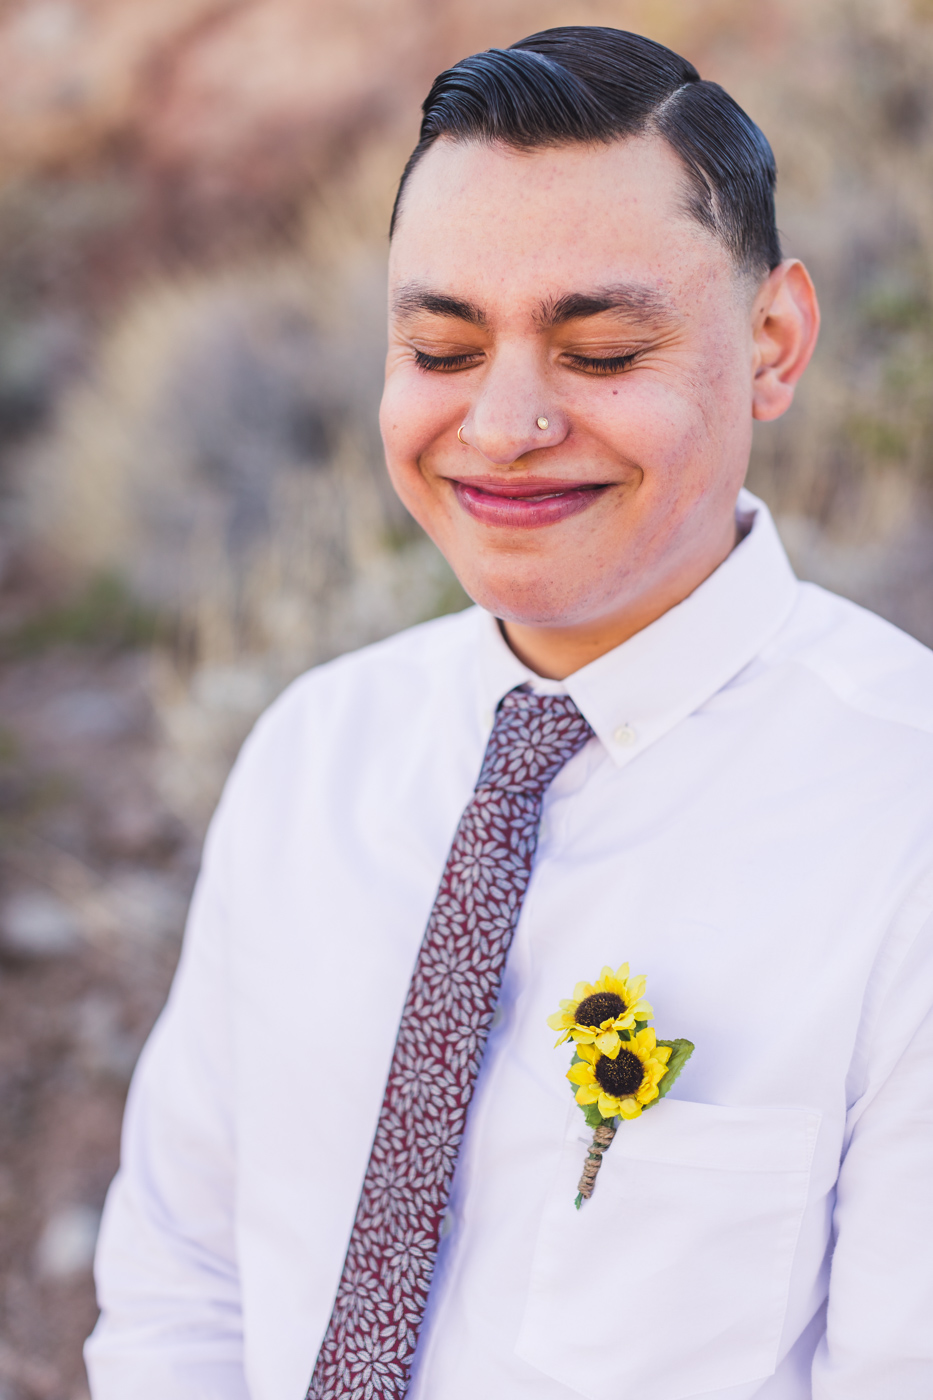 groom-smiling-at-wedding